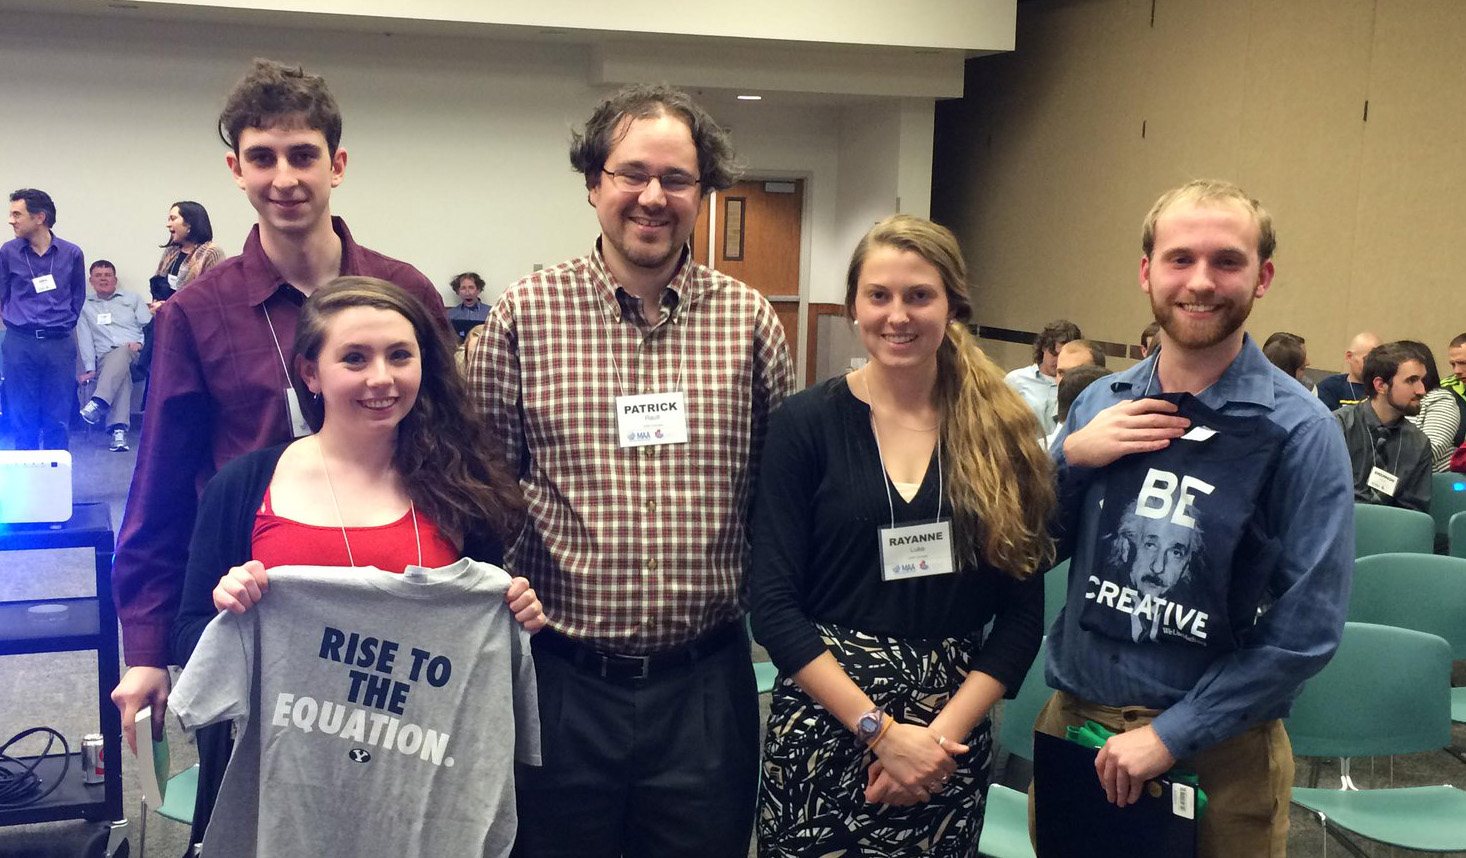 Patrick Rault (center) with SUNY Geneseo students who won the Math Jeopardy contest at CURM national / MAA regional conference in Utah in 2015.